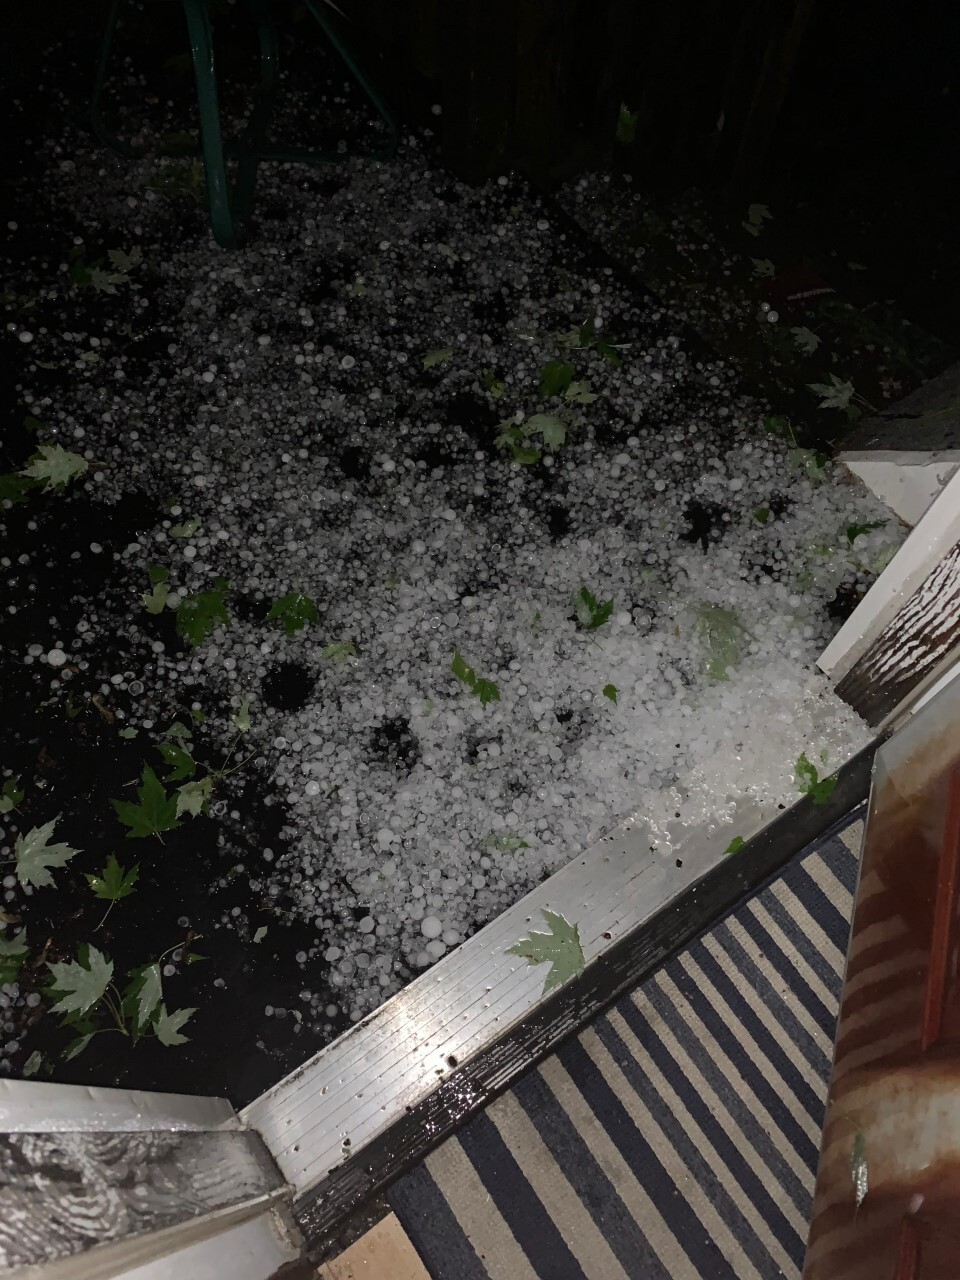 Thunder, lightning and hail blast through WNY overnight Tuesday into Wednesday.